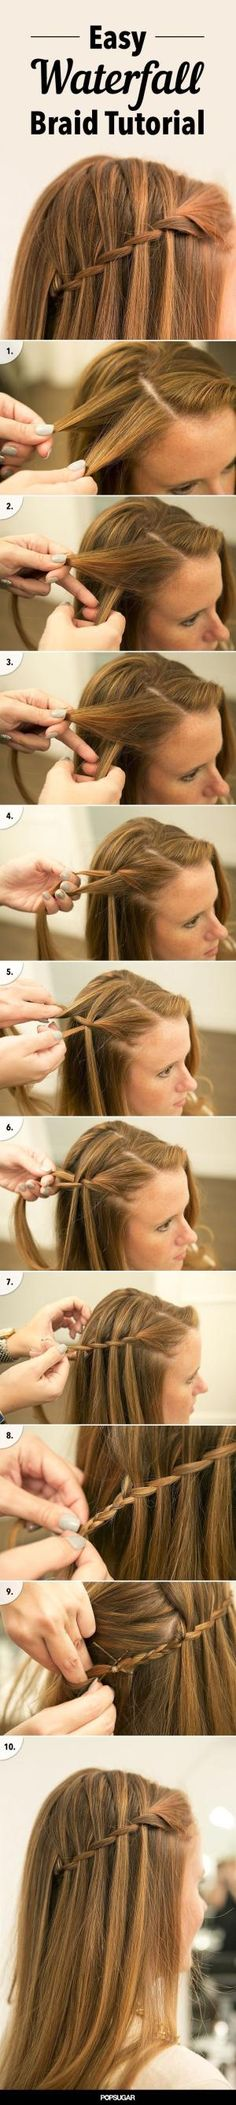 15 Easy Braid Tutorials You Have Never Tried Before by lindsay0